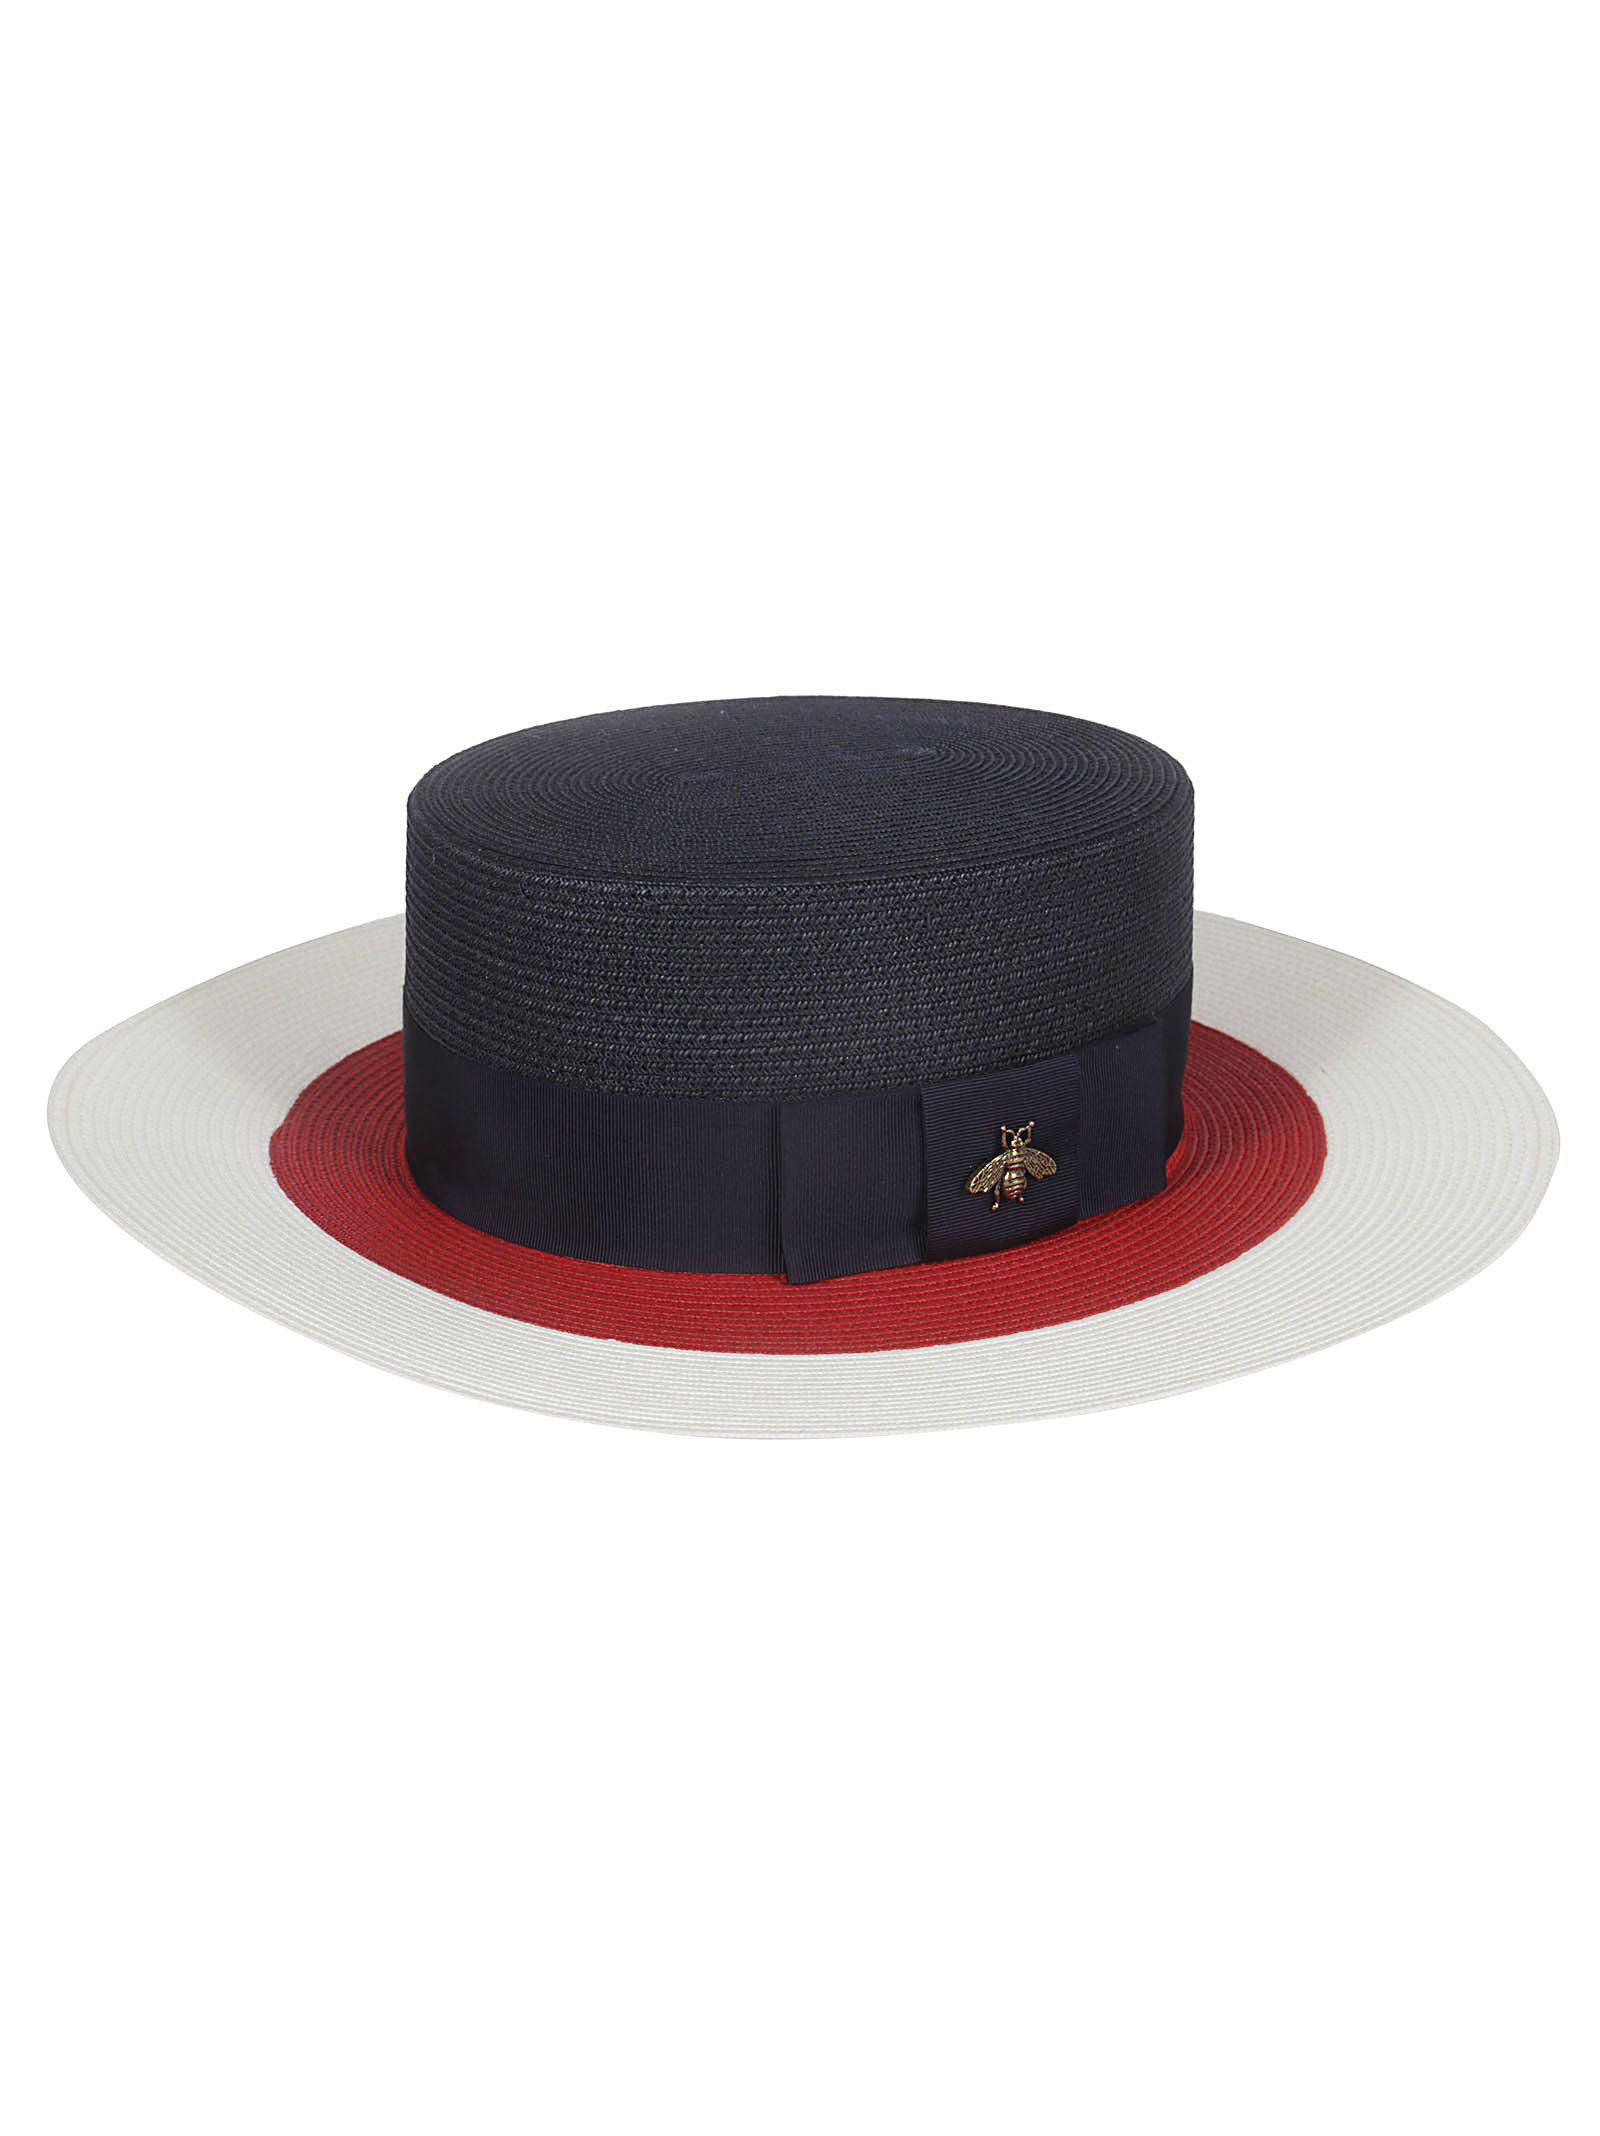 Gucci Papier Wide Brim Hat In Blue  91bdcaf47ffa